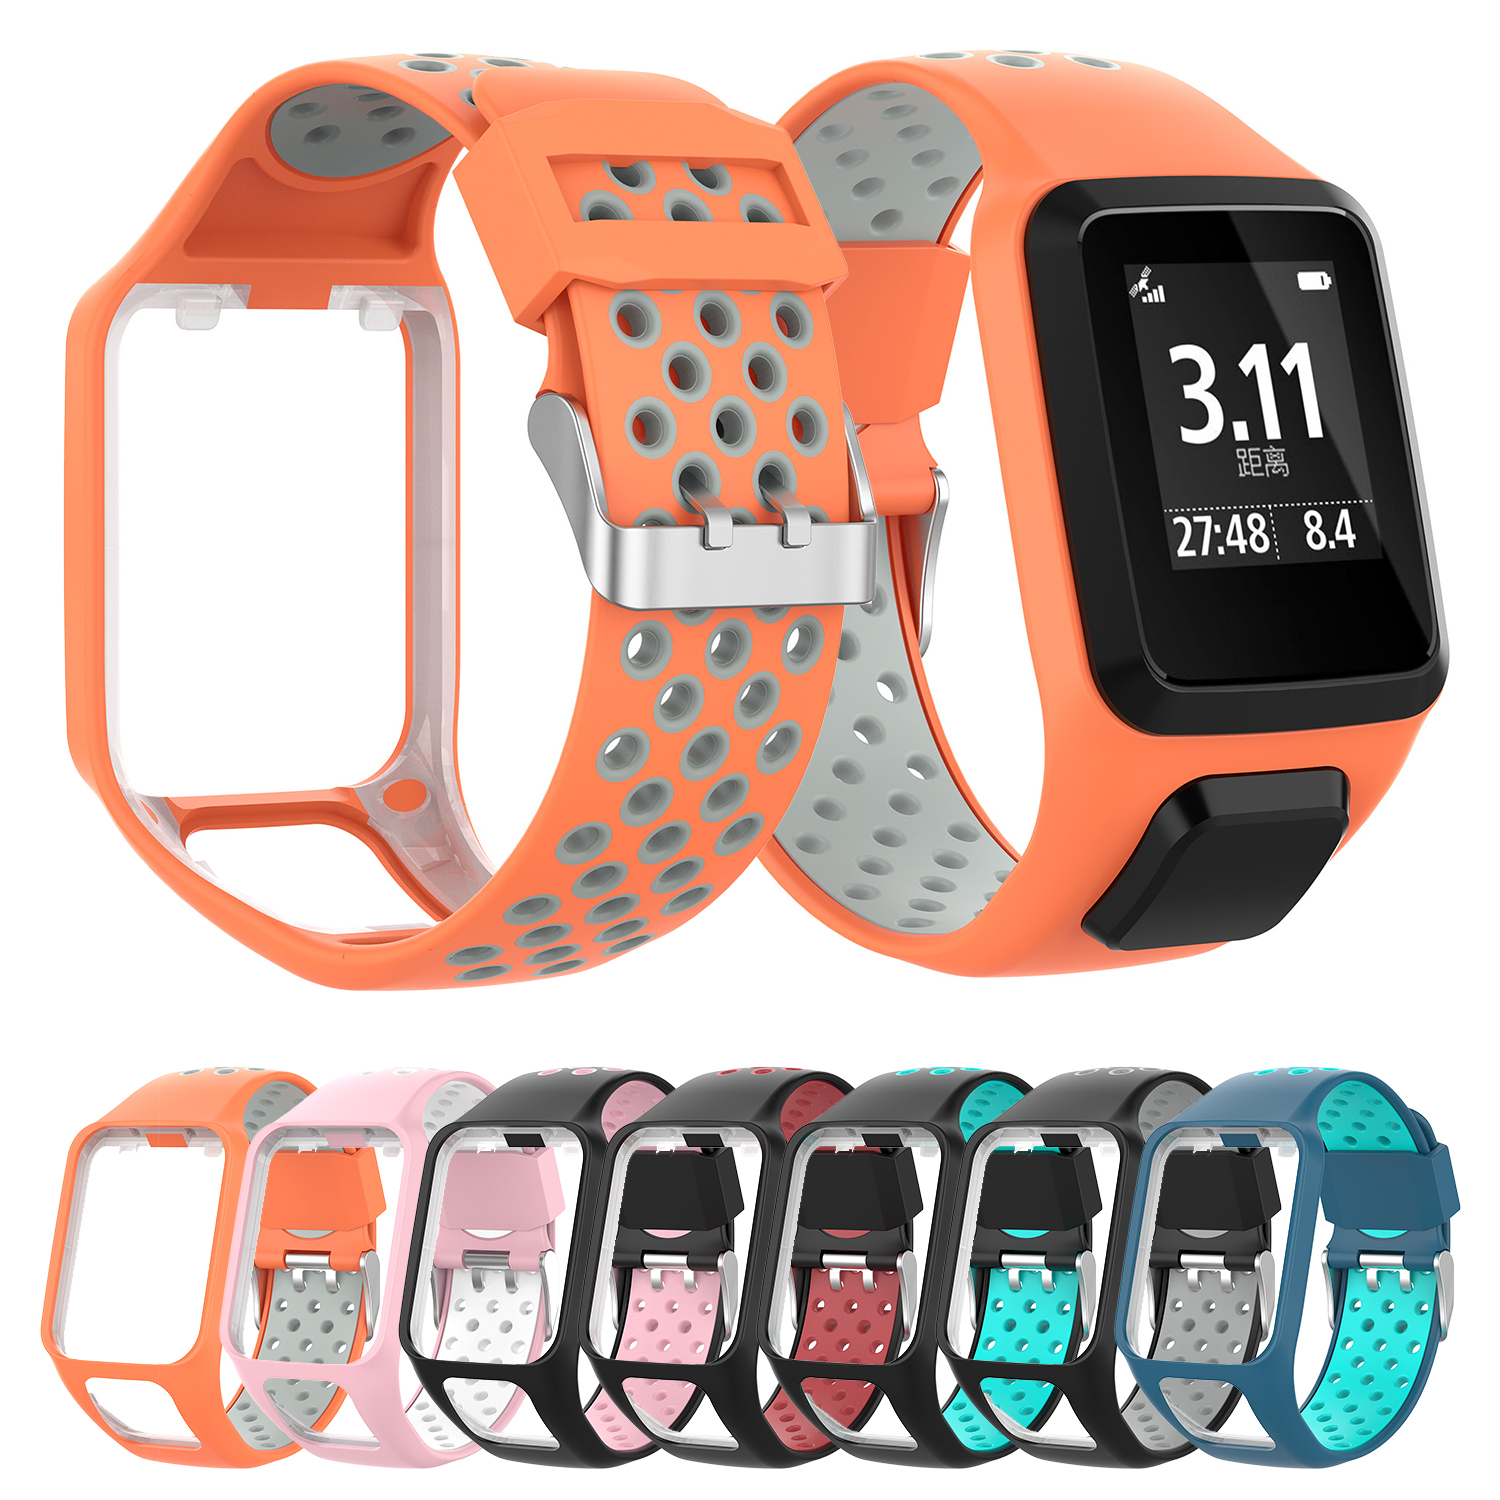 New Silicone Replacement Wrist Band Strap For TomTom Runner 2 3 Spark 3 GPS Watch Drop Shipping